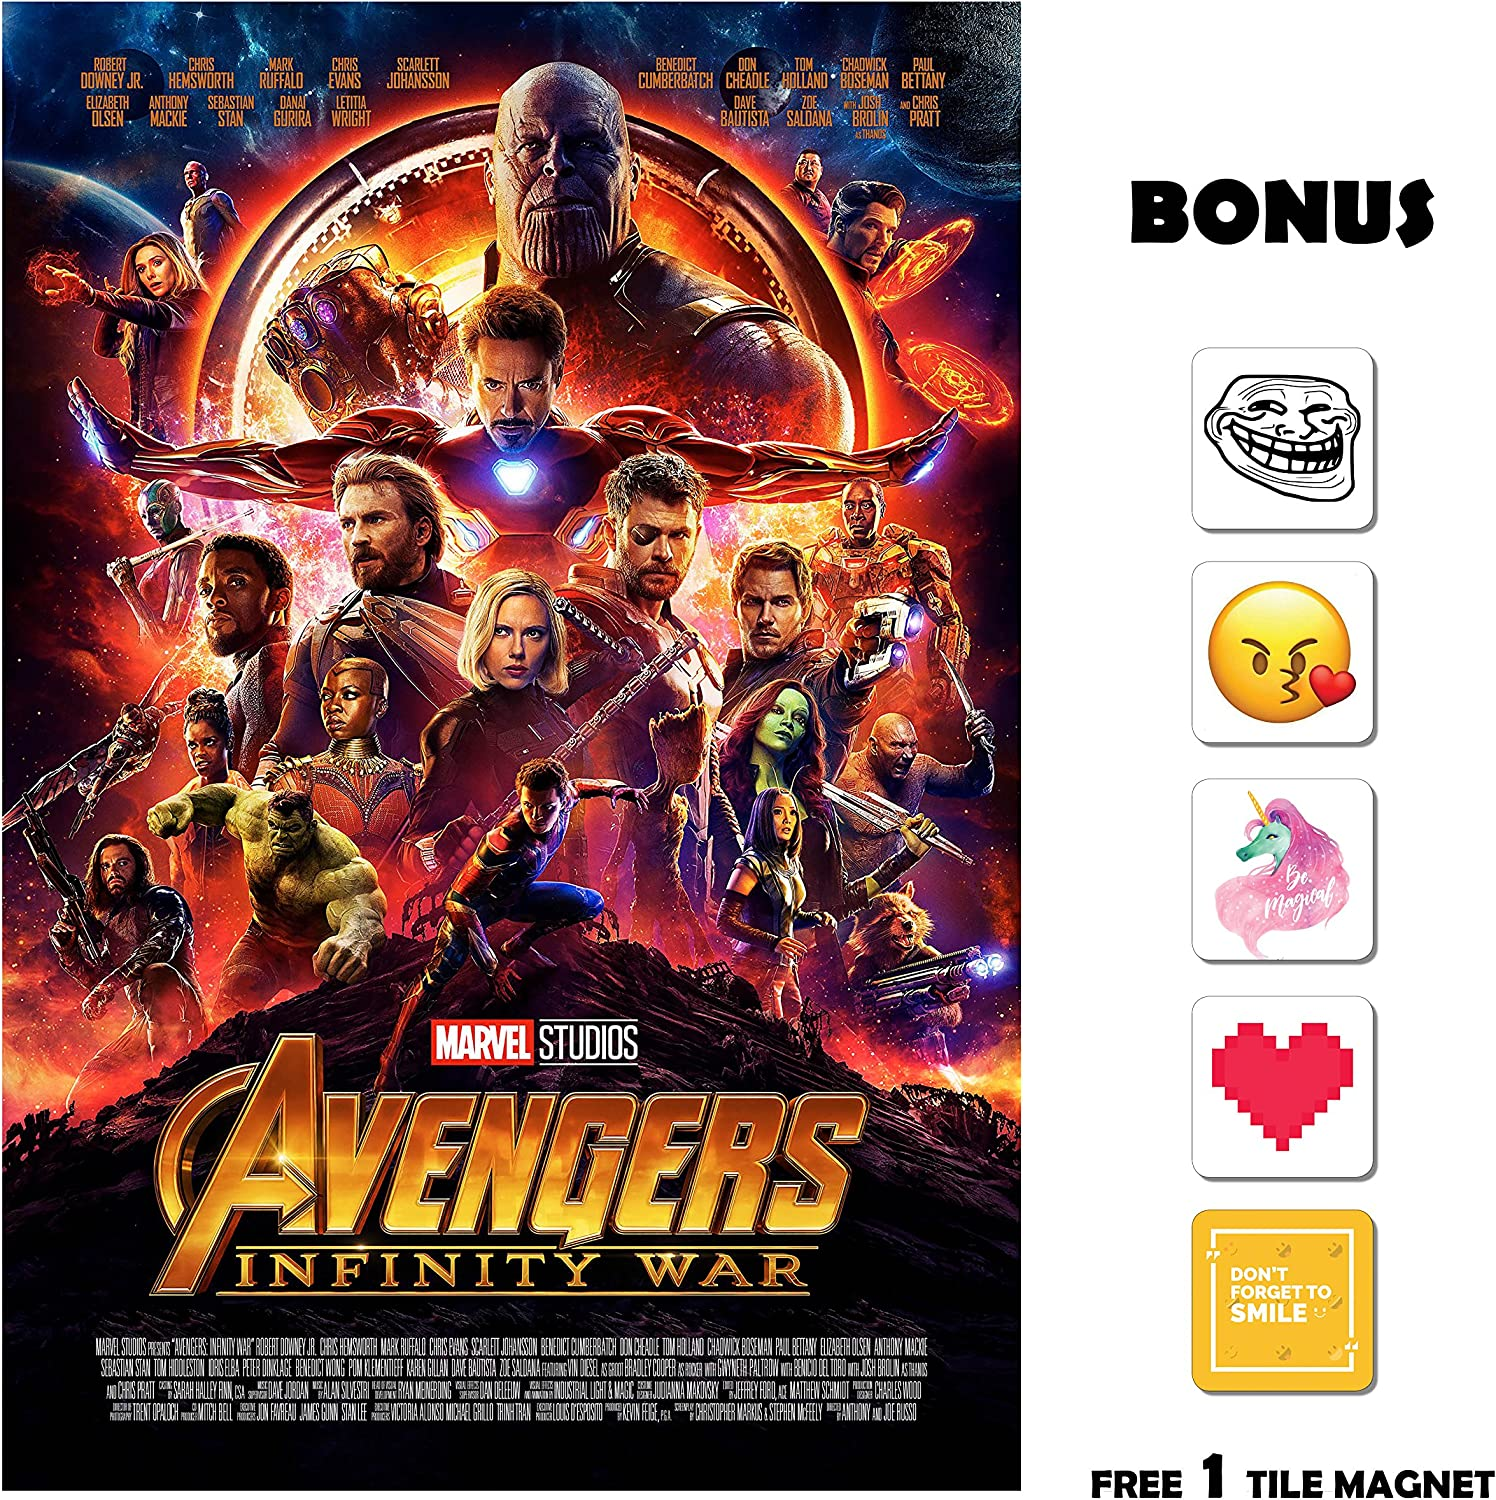 Amazon Com Movie Poster Avengers Infinity War 2018 Main 13 In X 19 Borderless Free 1 Tile Magnet Posters Prints